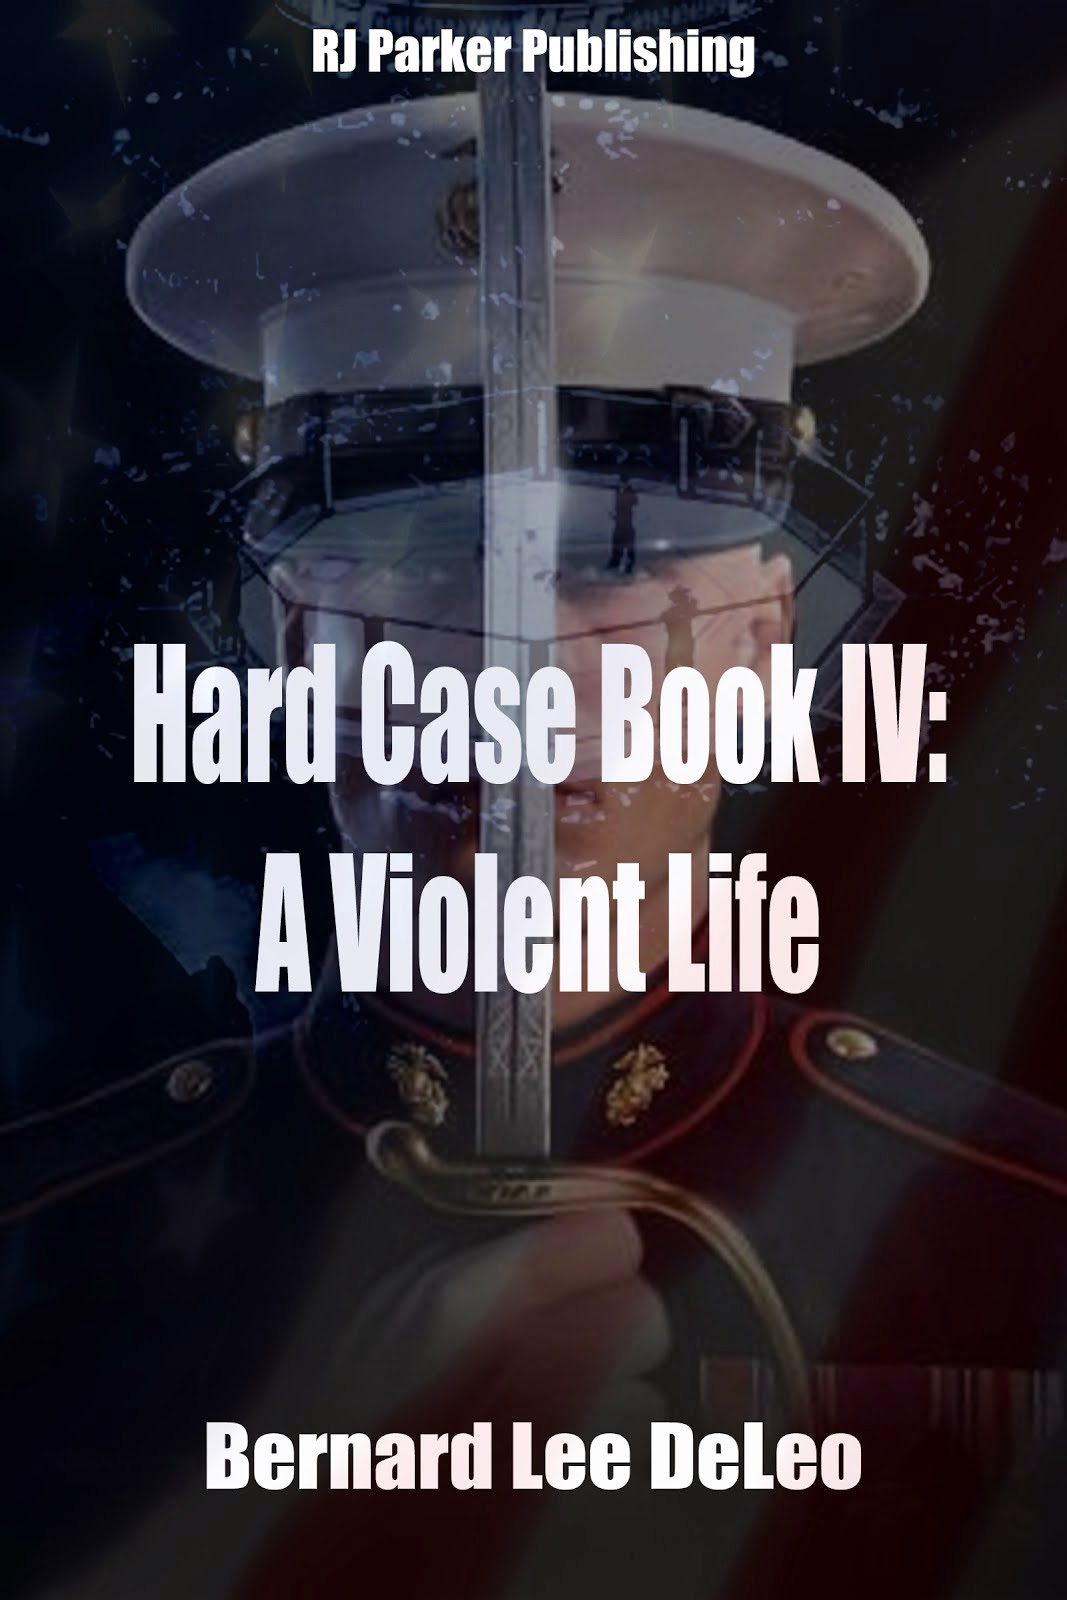 Hard Case Book IV: A Violent Life